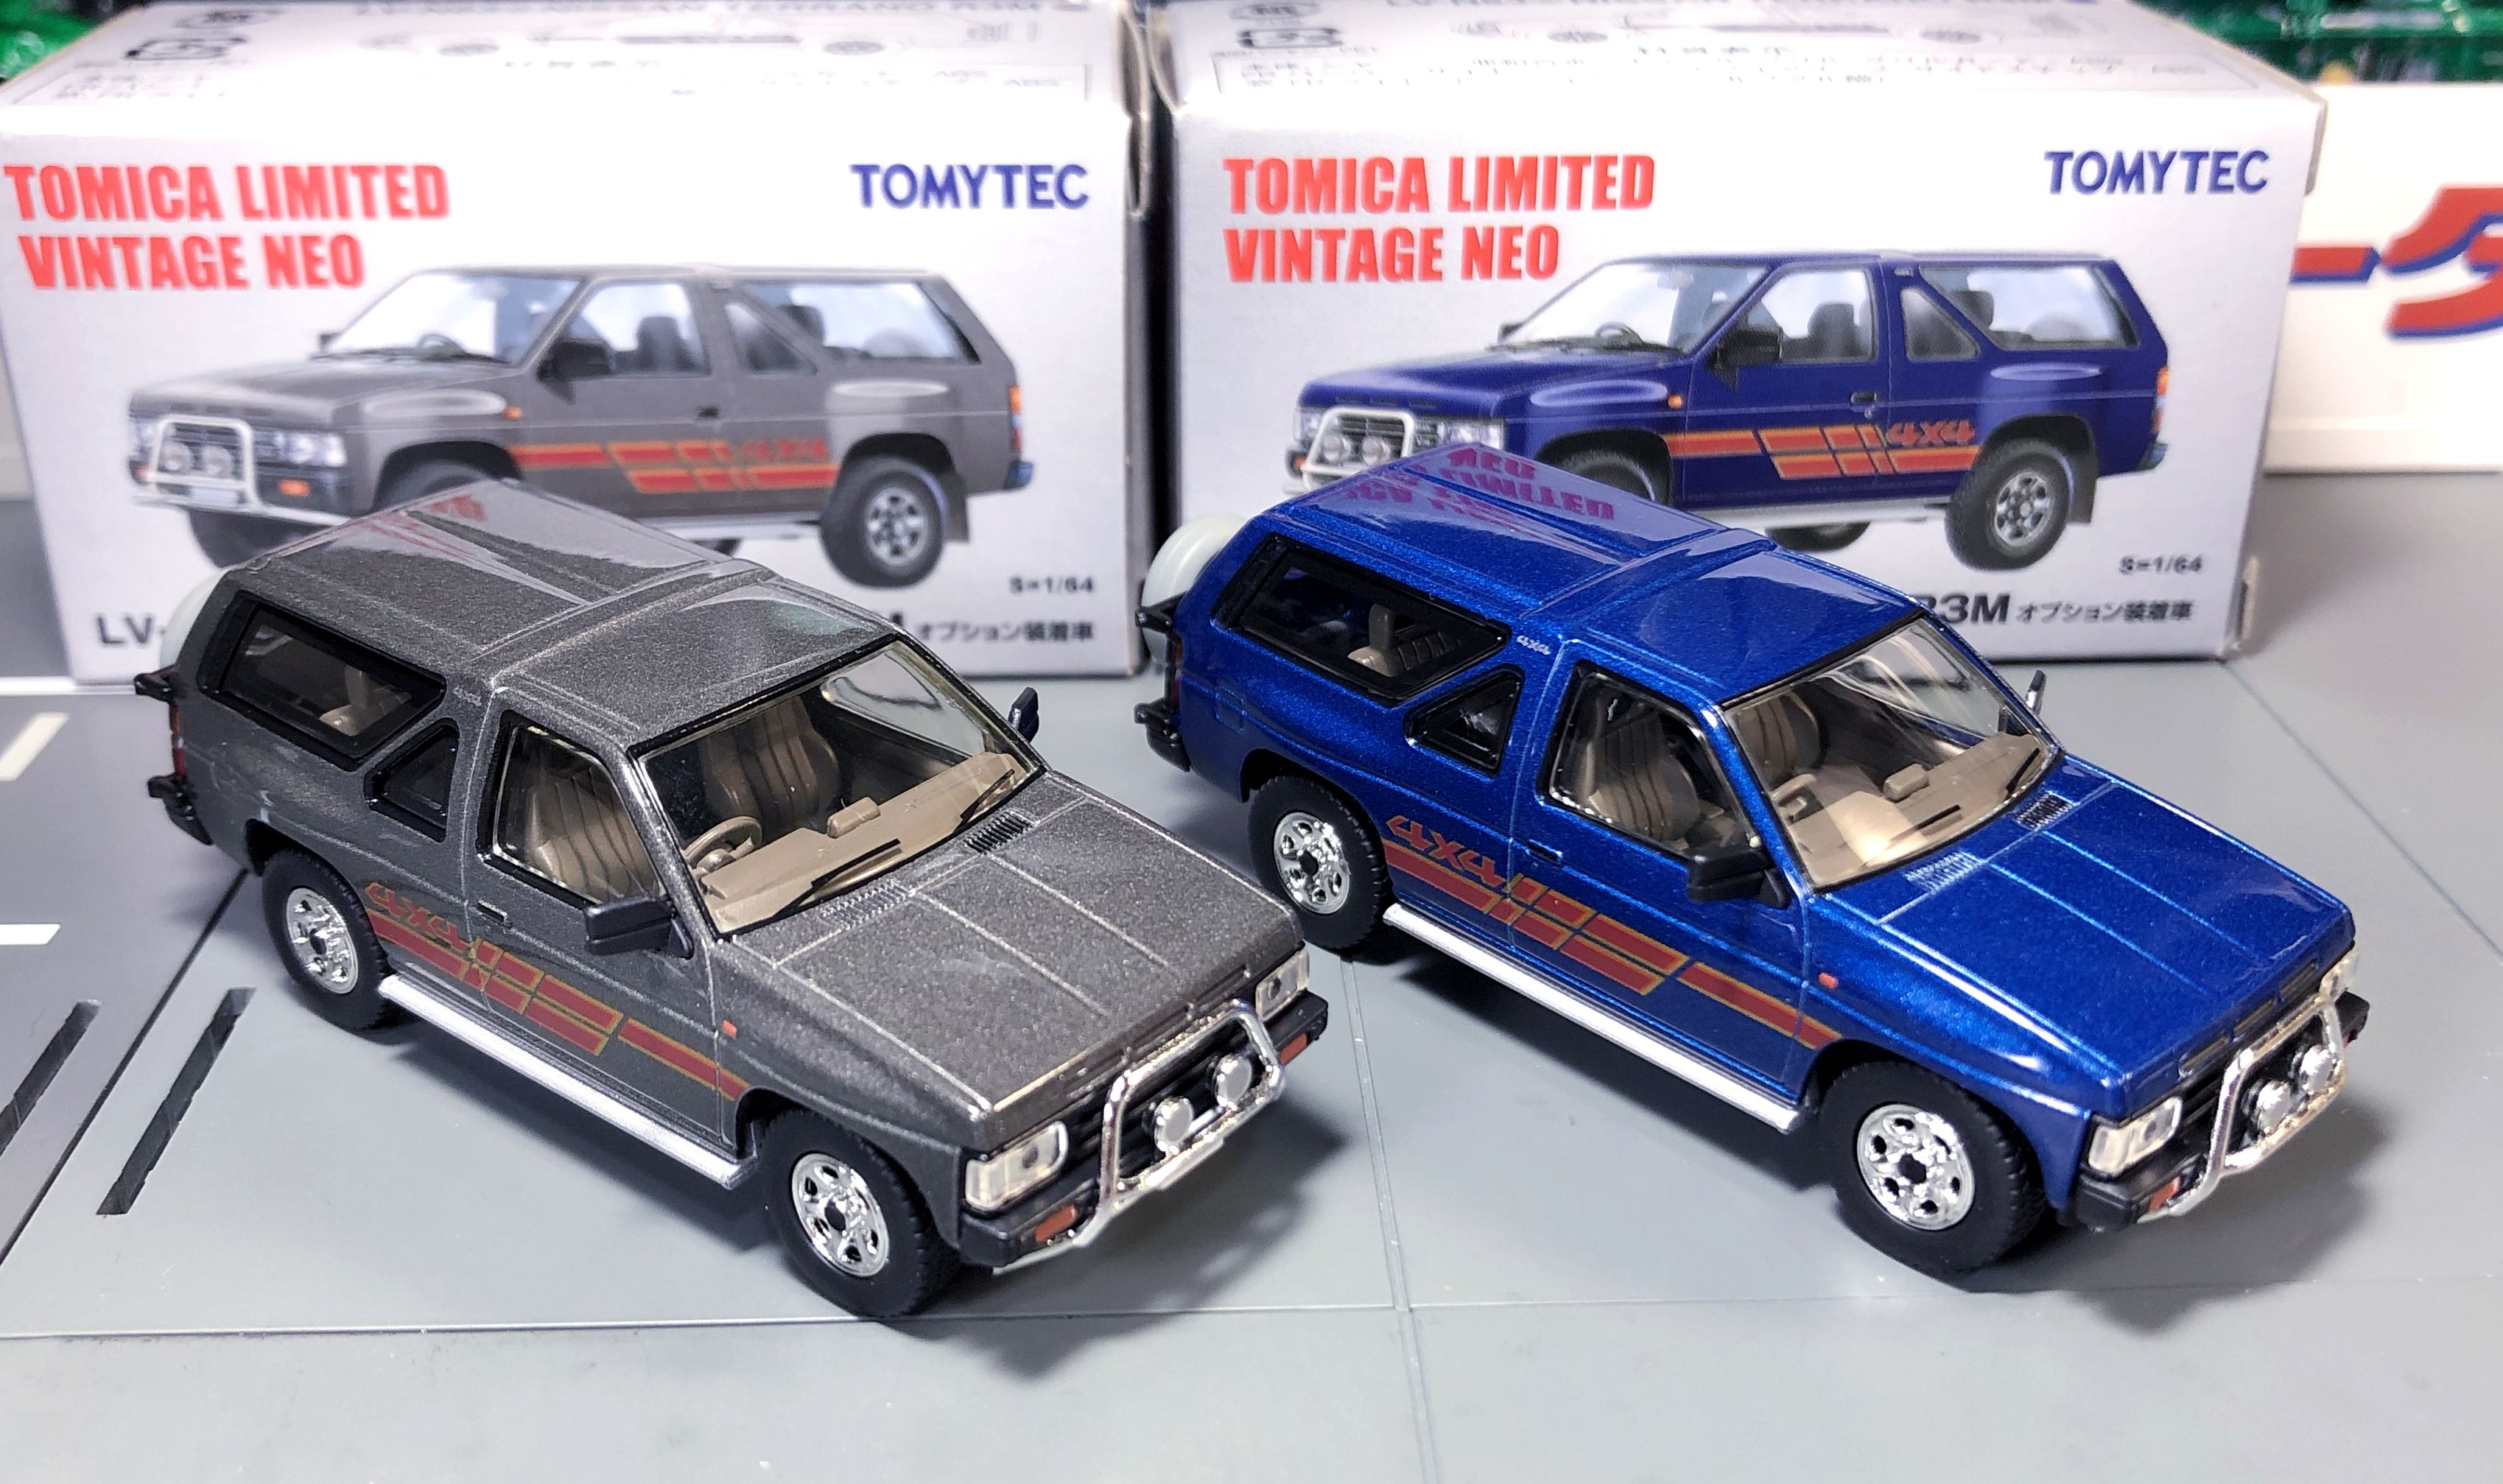 Tomica Tlv 4x4 Nissan Terrano R3m Unboxing Perfect Pair Youtube Nissan Terrano Mini Cars Nissan